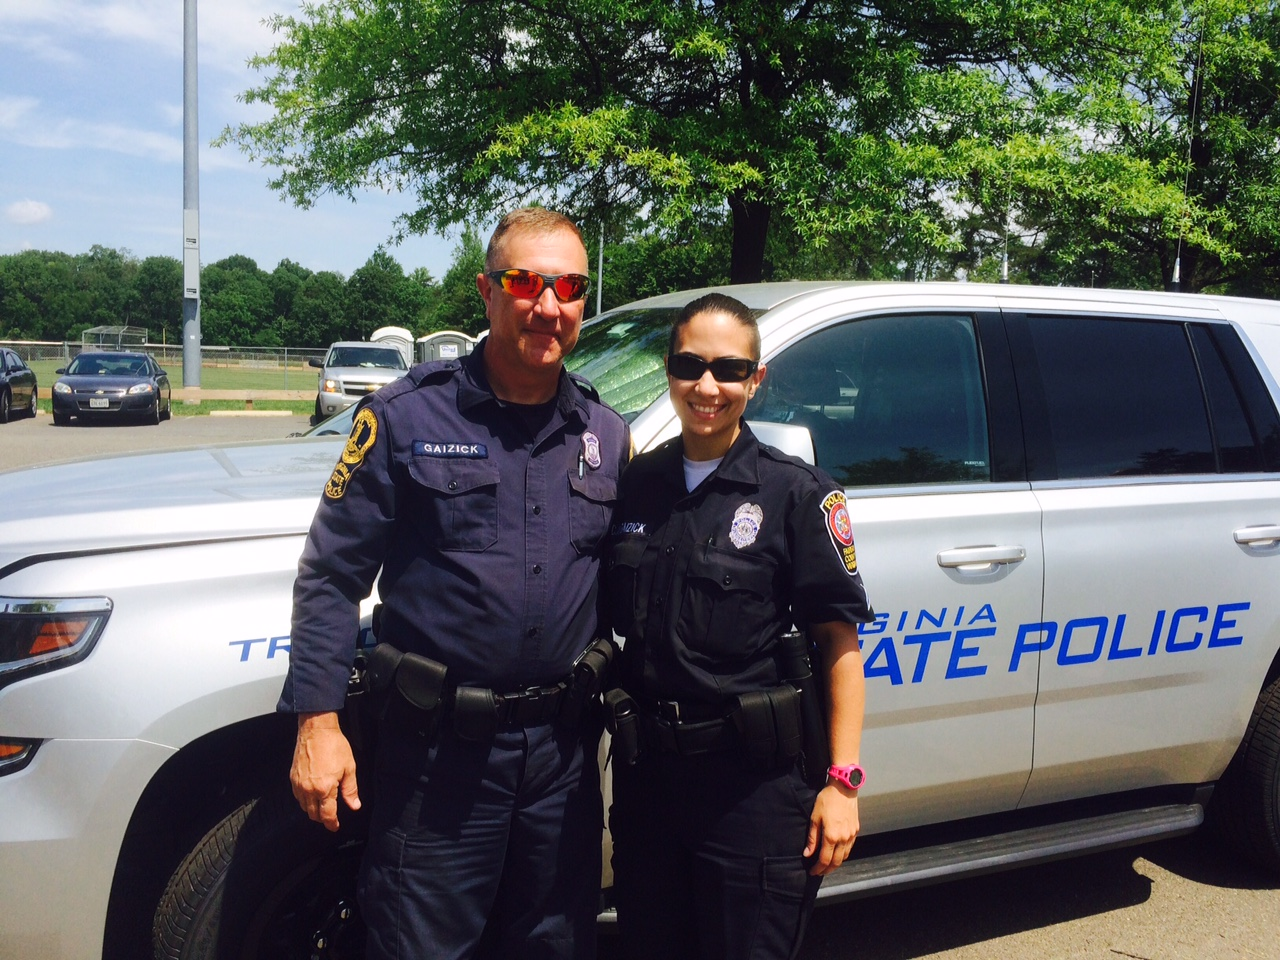 Police Cite Trucks in Annual Safety Effort   Fairfax County Police